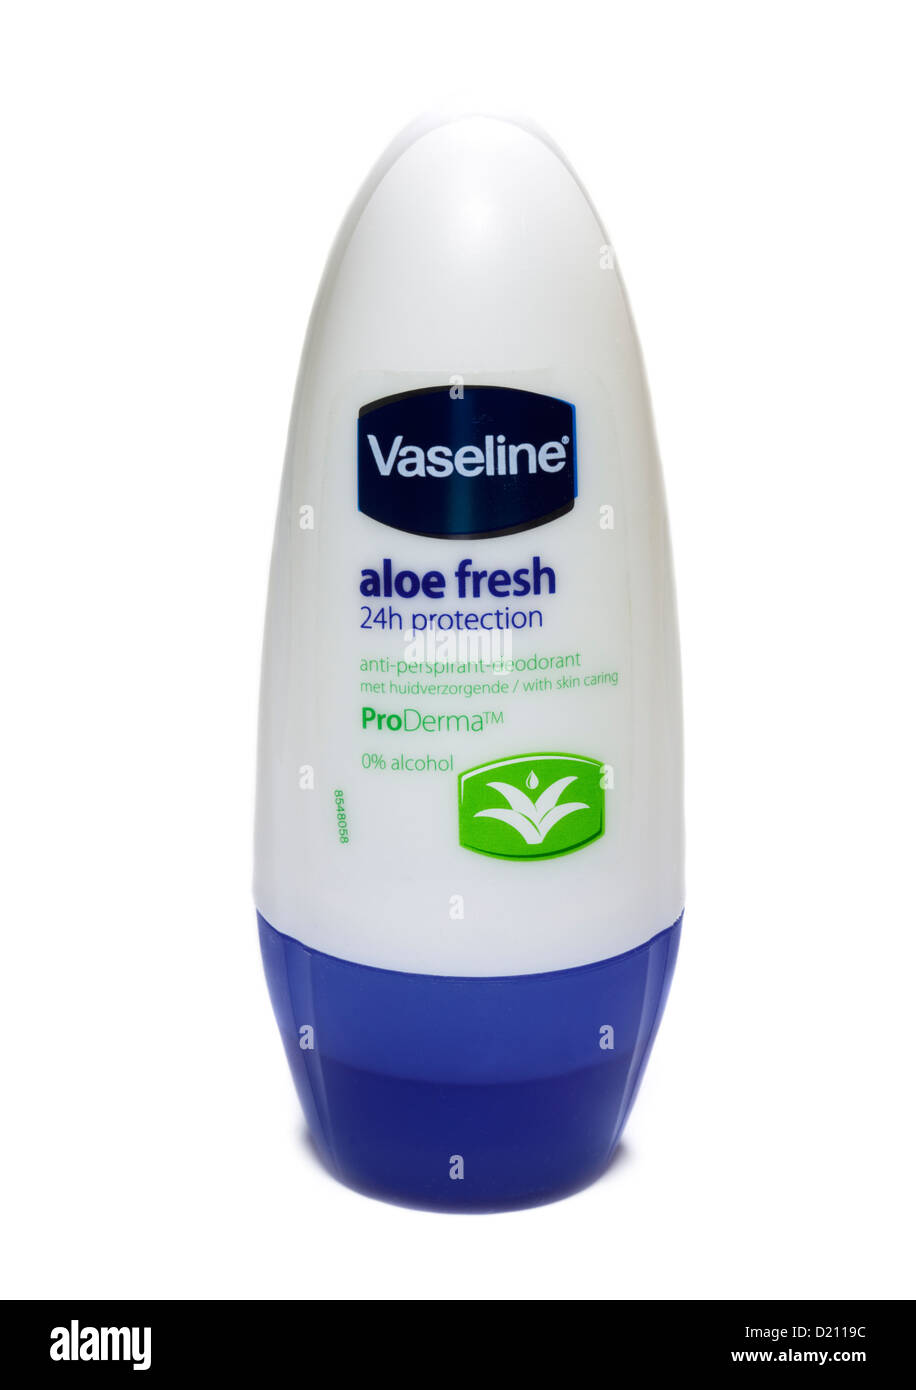 Vaseline Aloe Fresh Antiperspirant Deodorant Roll-On - Stock Image